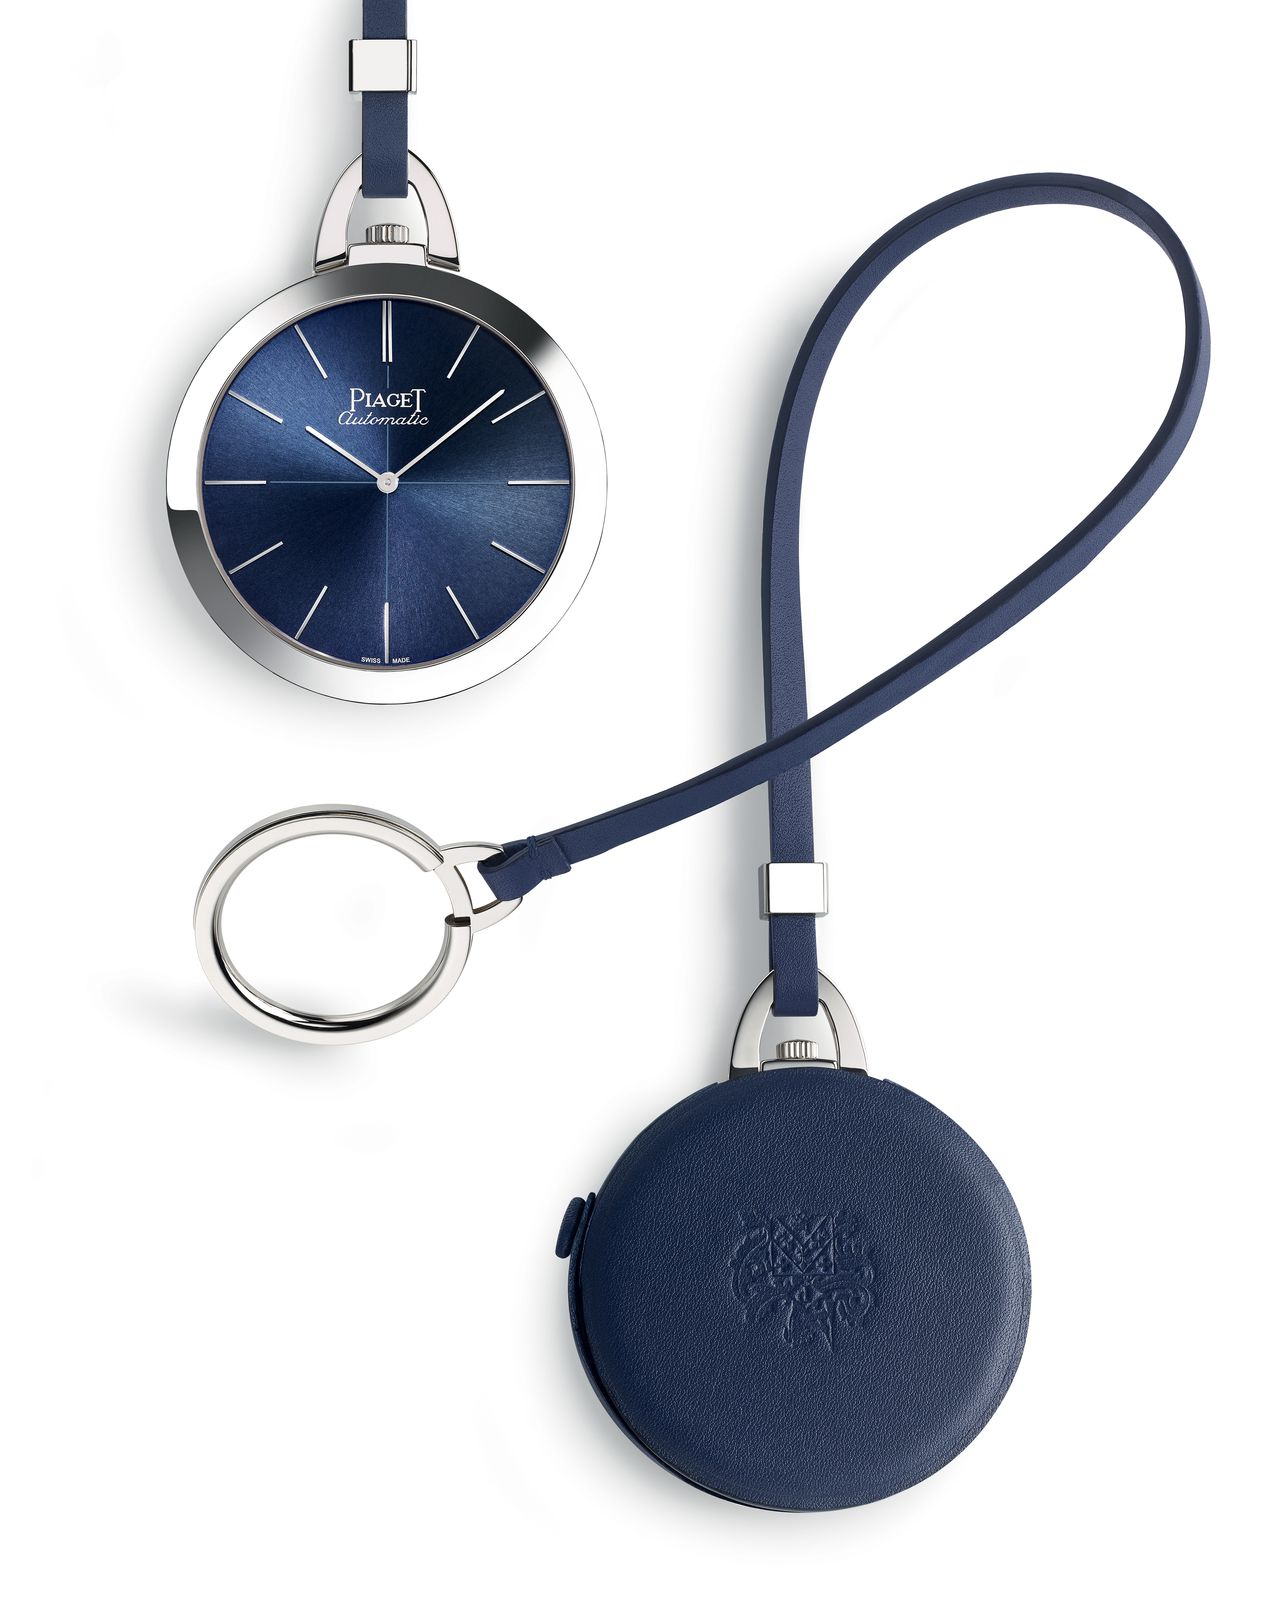 Piaget Altiplano 60th Anniversary Pocket Watch - kék tok marhabőről